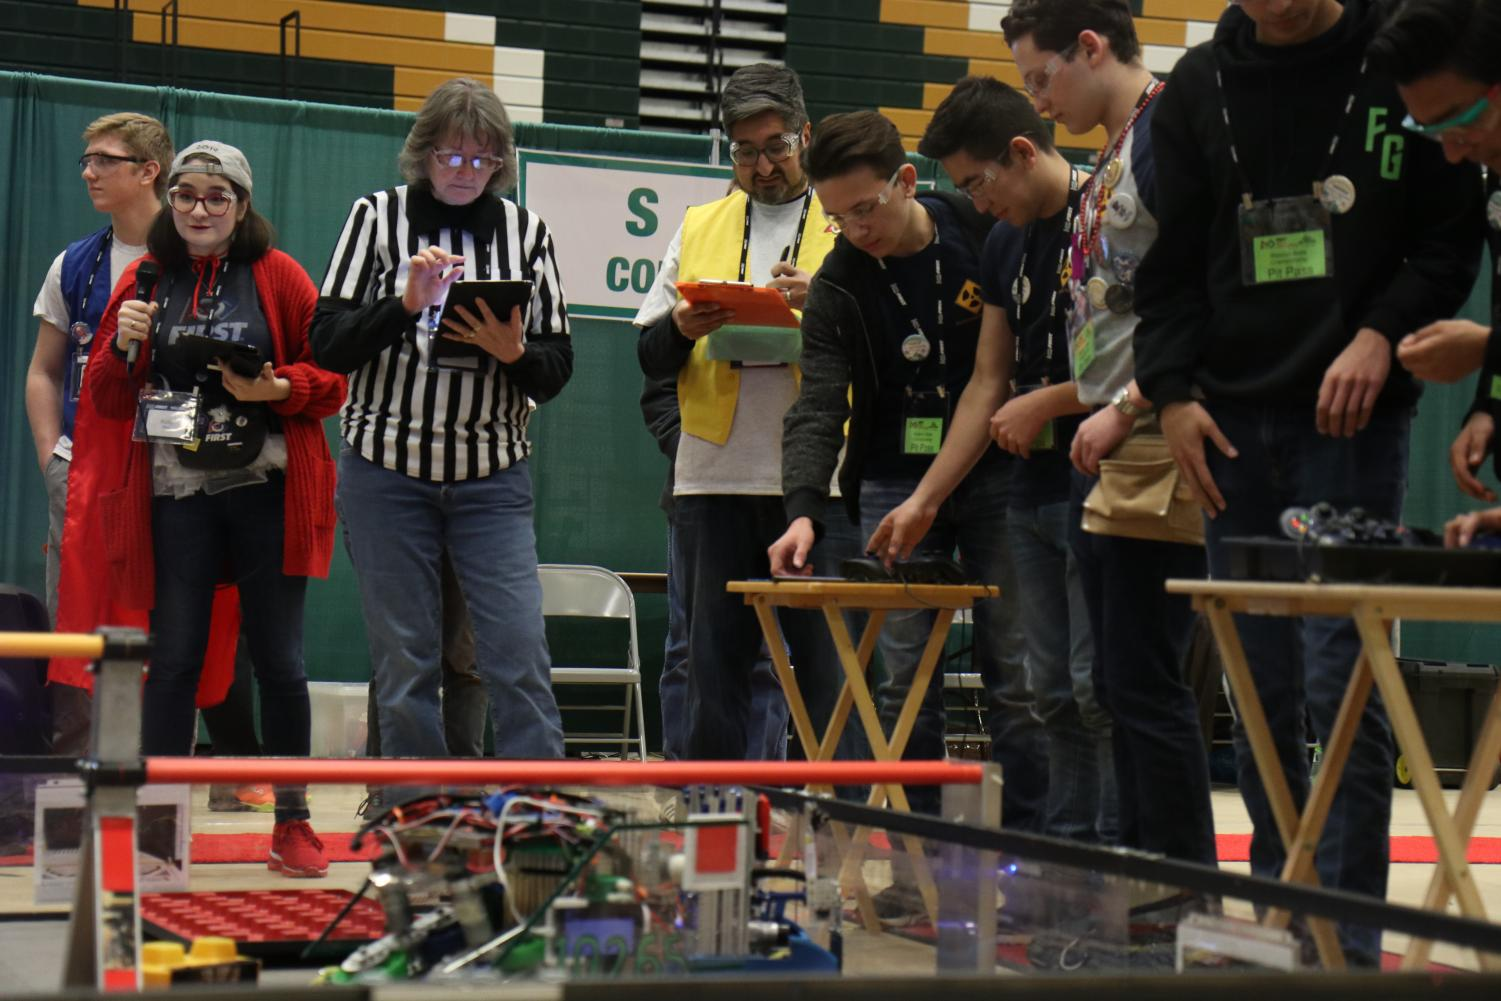 Photo+Gallery%3A+All+Three+MHS+Robotics+Teams+go+to+State